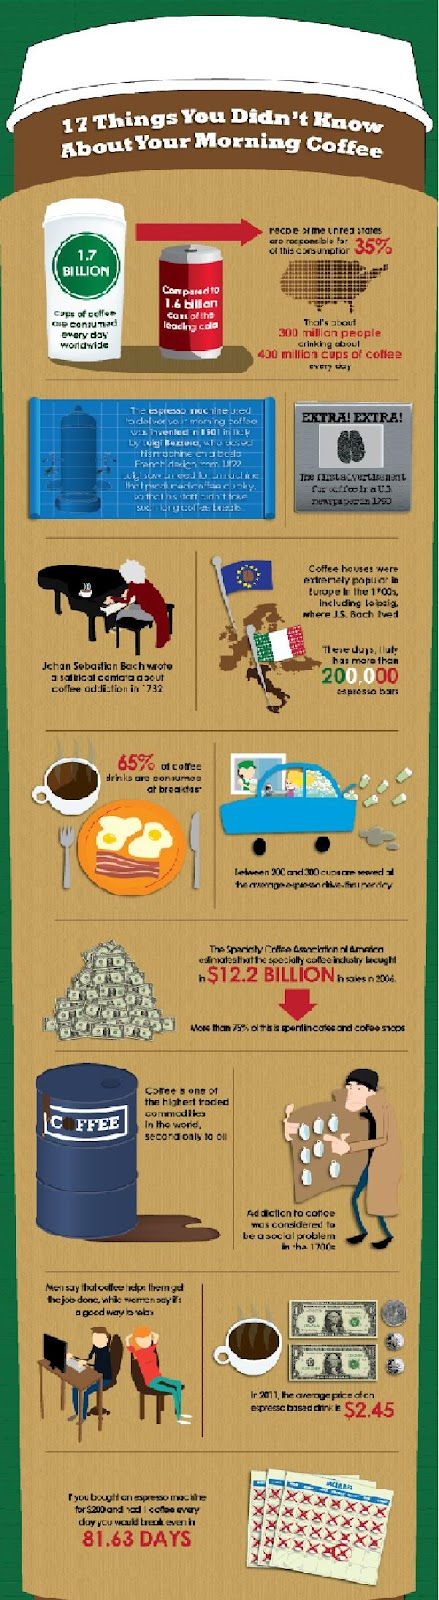 world coffee consumption statistics